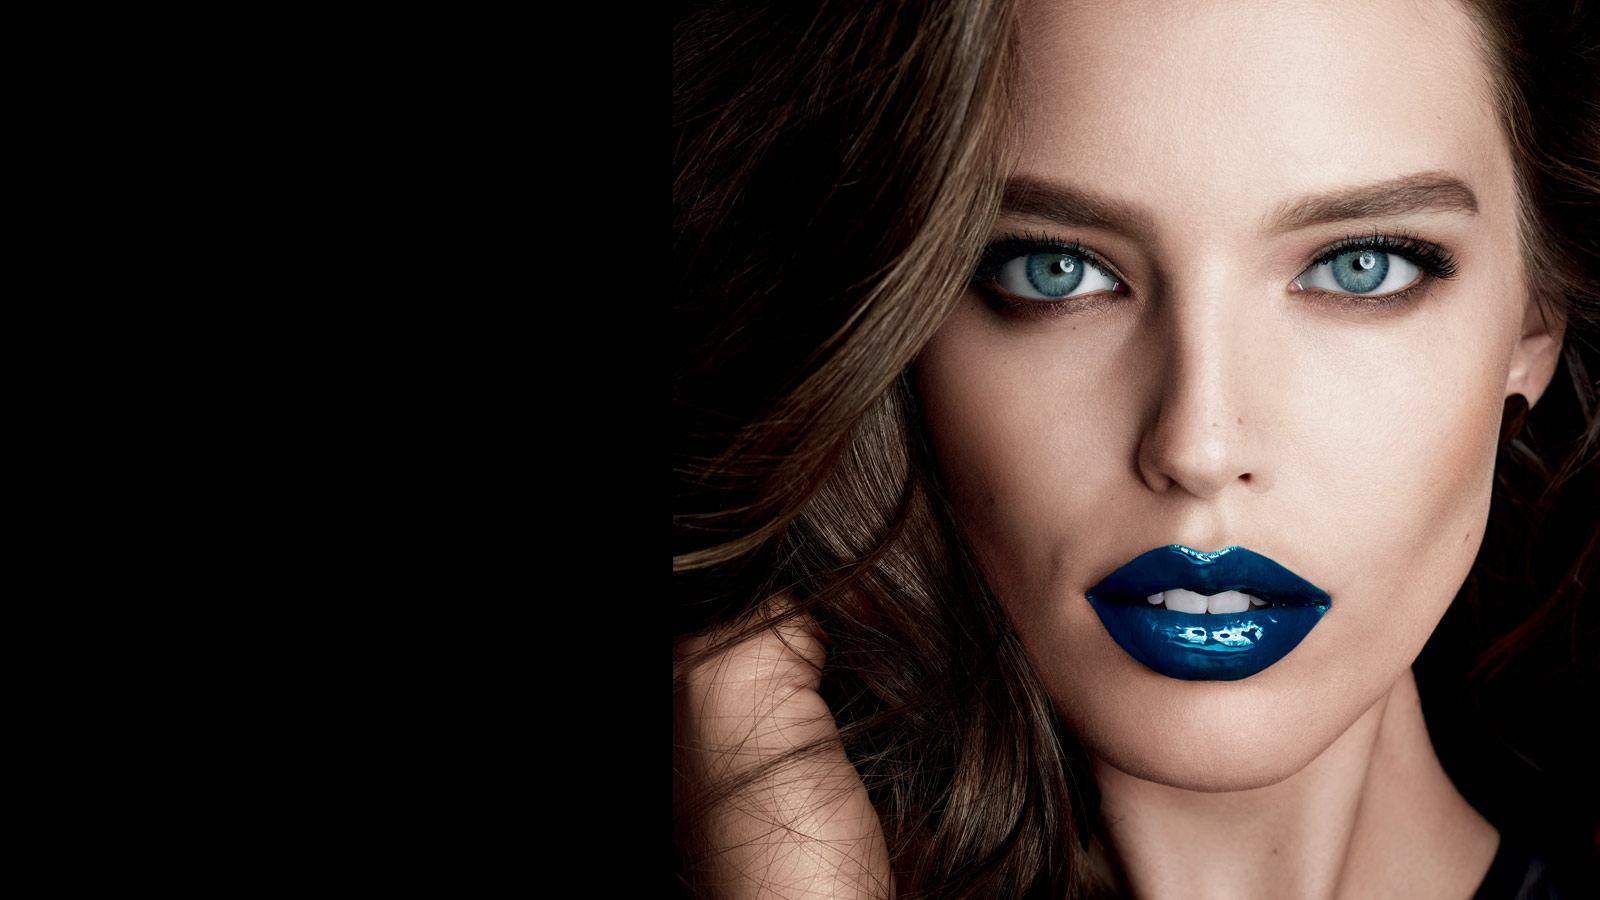 maybelline-emily-didonato-vivid-hot-lacquer-featured-product-wide-main-background-image-16x91